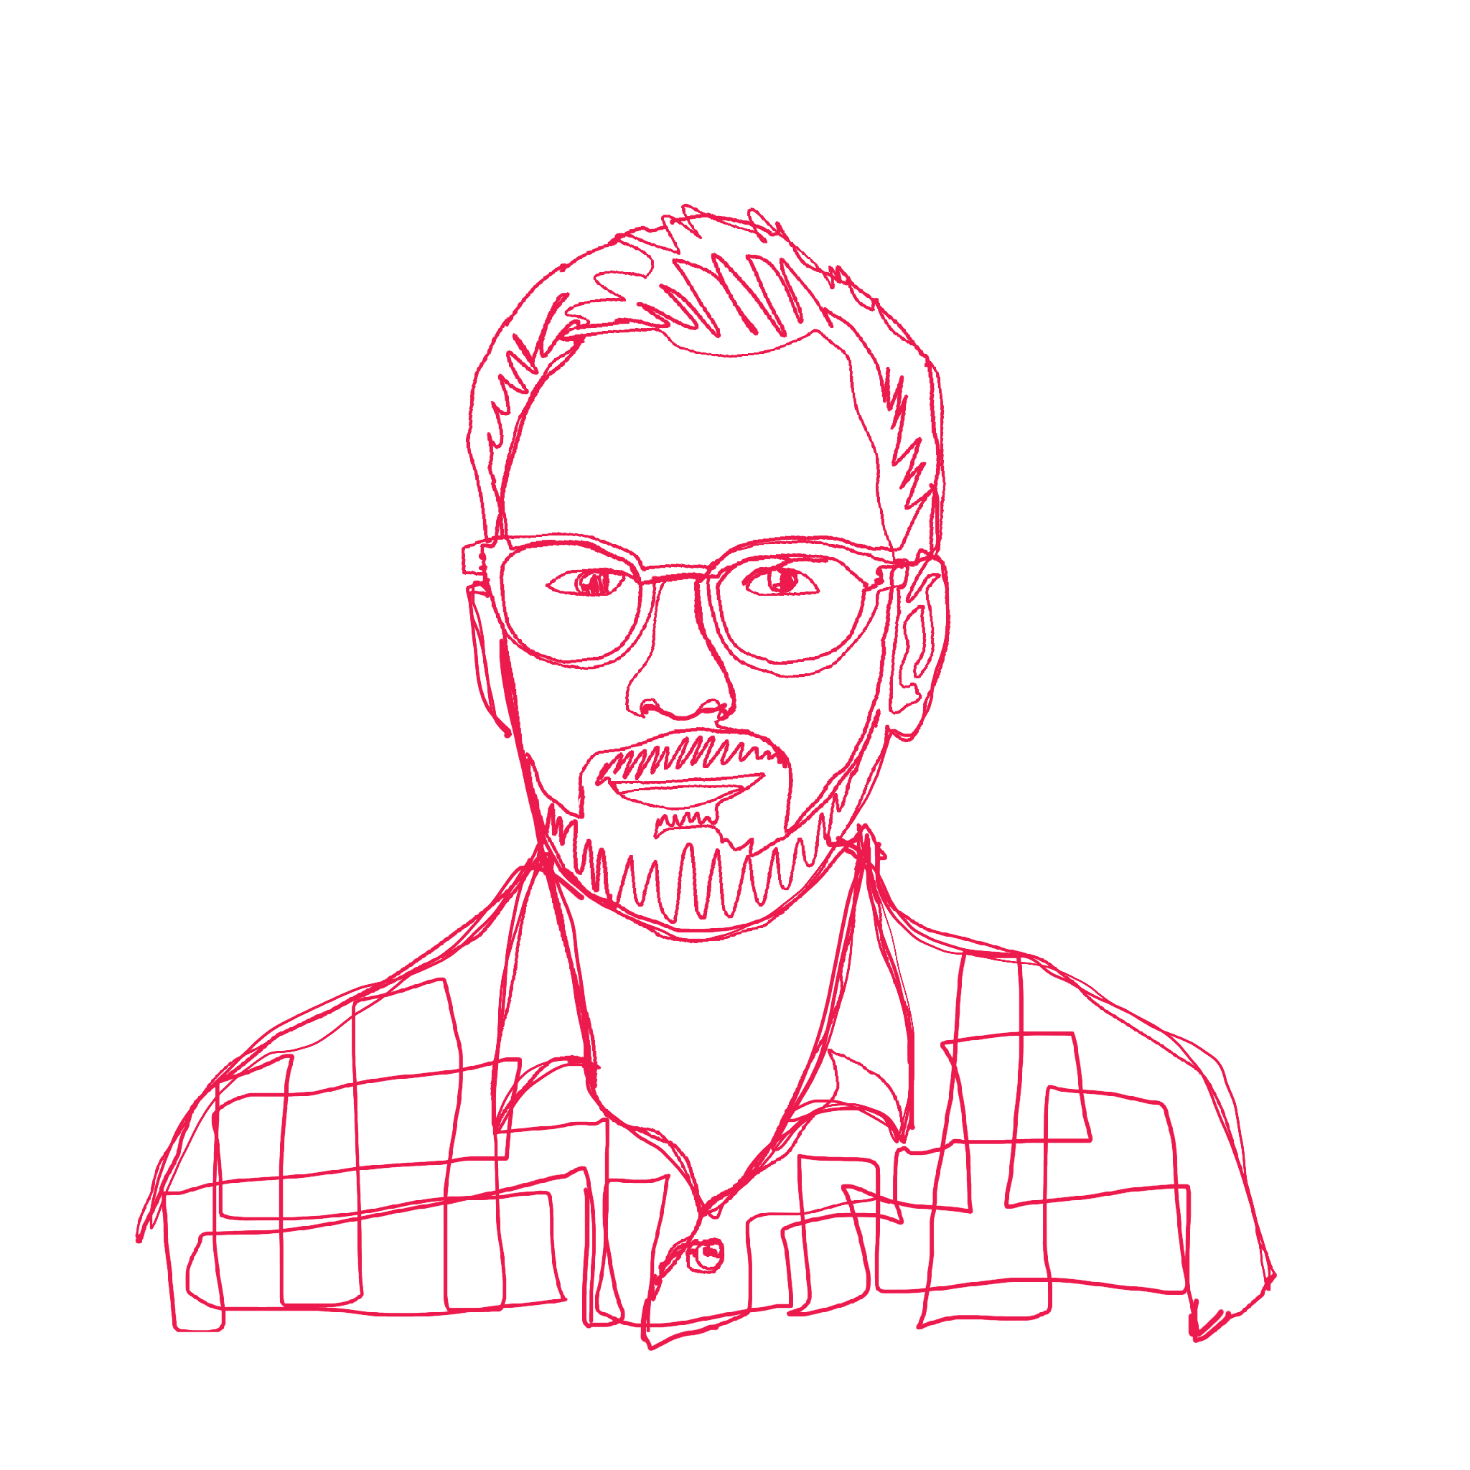 Self-portrait of Jesse in line-drawing style